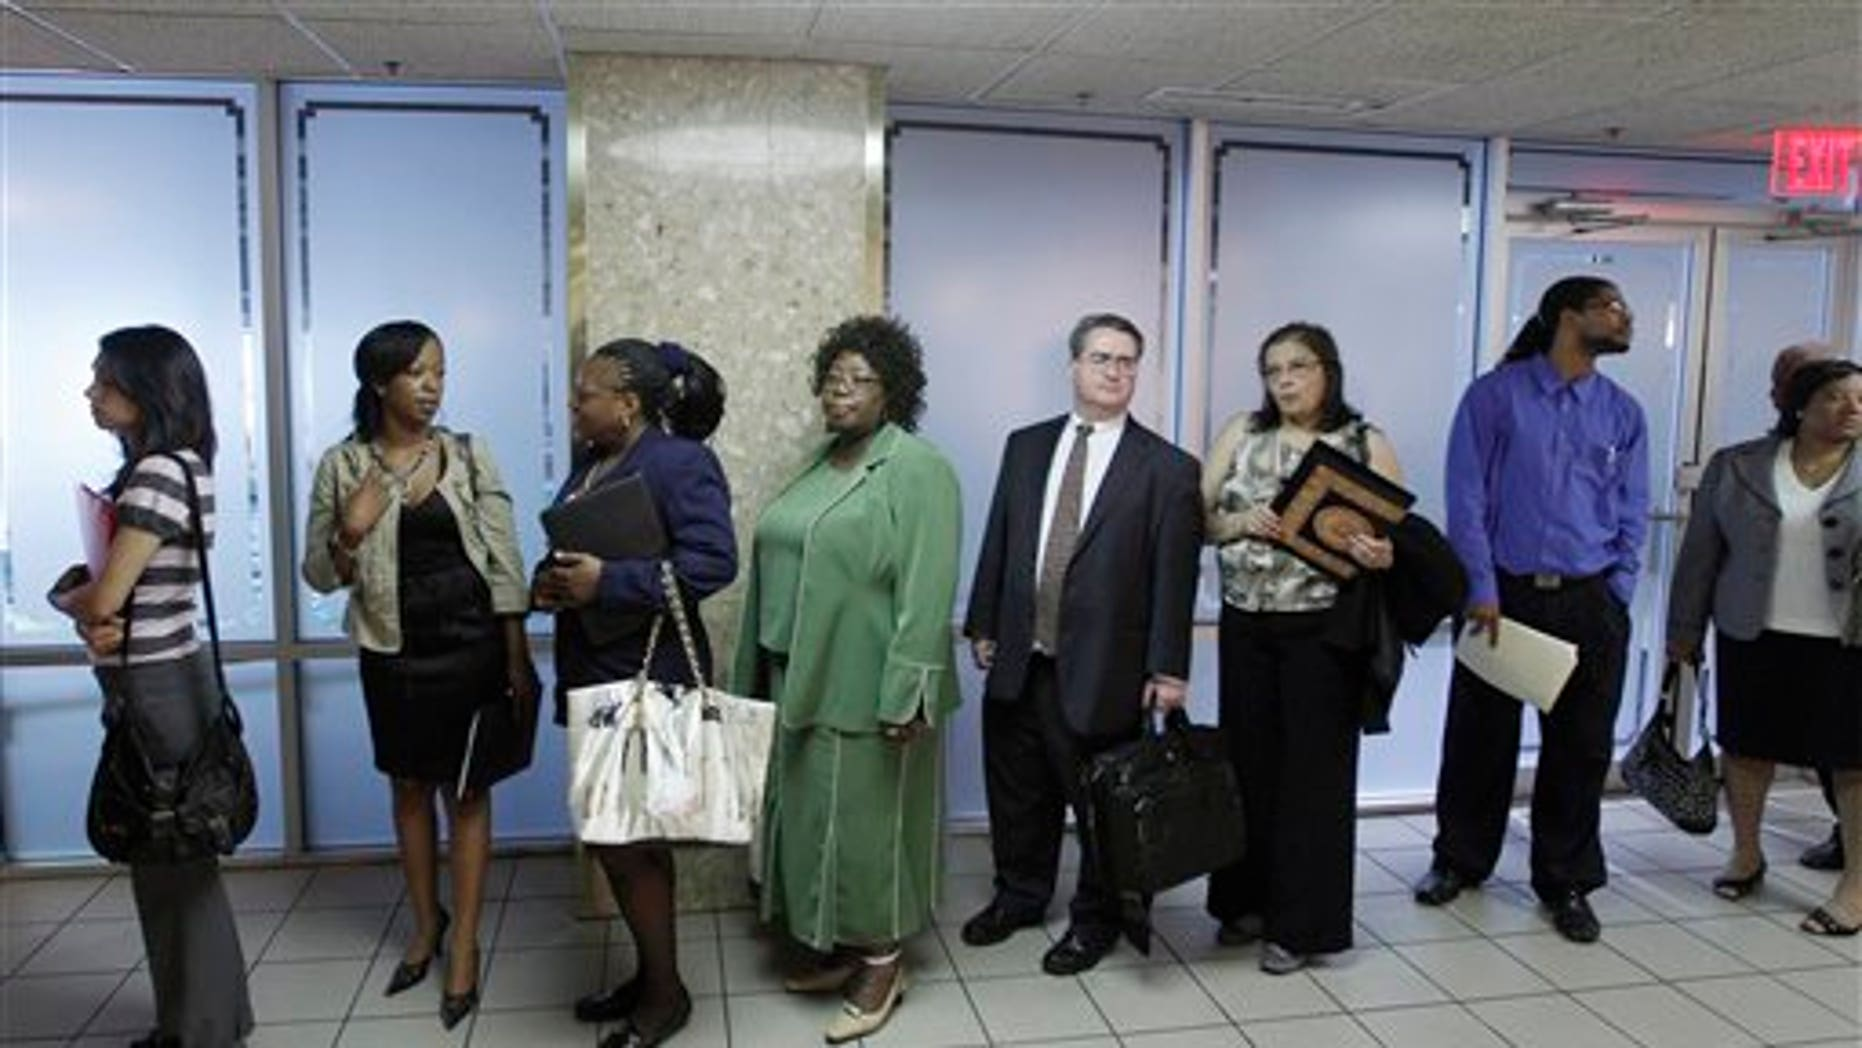 In this Aug. 4, 2011 photo, job seekers line up to register as they arrive at the Career job fair in Arlington, Va. The number of people seeking unemployment benefits decreased last week, a sign that the job market is improving slowly after a recent slump. (AP Photo/Jose Luis Magana)